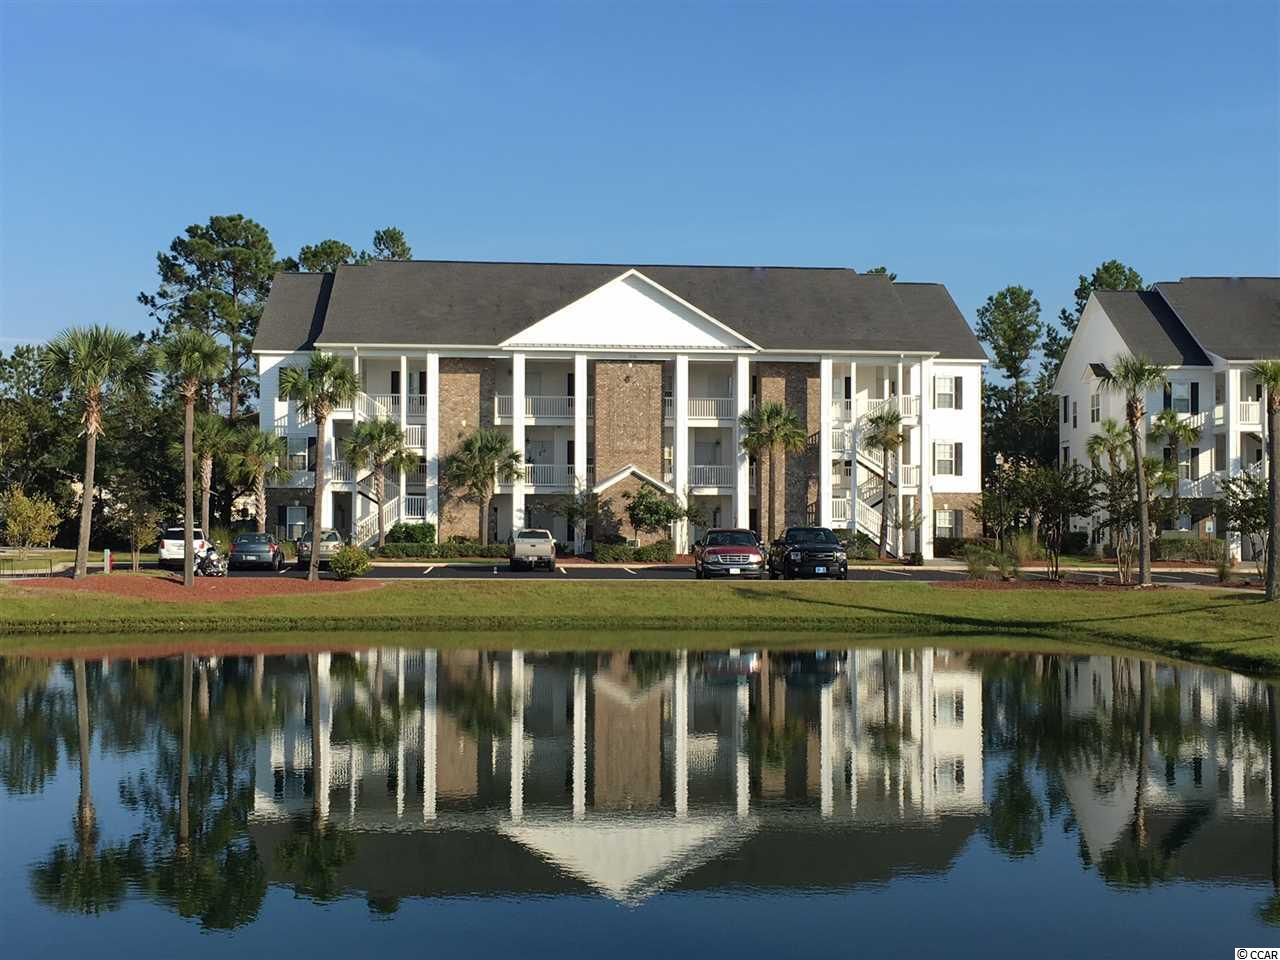 This gorgeous first floor 3BR, 2BA villa has wonderful private tree lined views, so enjoying your morning coffee on your screened in porch just got even more relaxing. There is still time to come help design your home by choosing color options for your flooring, granite and cabinet options. Other amazing features of this home include 9ft ceilings, granite countertops in kitchen and matching granite in all bathrooms, screened in porch, outside storage unit, walk in closets and more. This community will be totally gated once the last building is completed, low HOA fees and only 2 miles to the beach. This property is so centrally located on the South end to everything. This is a perfect primary home, second home or beach retreat. The units are all on one level and the care free living provide by this community gives you the full essence of coastal living. This building is currently under construction (pictures are of our current model and not the actual unit for sale) and has an estimated completion date of June 2020 (that can change). We do have an on site model available to see everyday; the model hours are Monday - Friday 10am-4pm, Saturday 12pm-4pm and Sunday 12pm-3pm. Stop by and tour these gorgeous homes for yourself. All Sq. Footage is approximate and not guaranteed, buyer is responsible for verification.